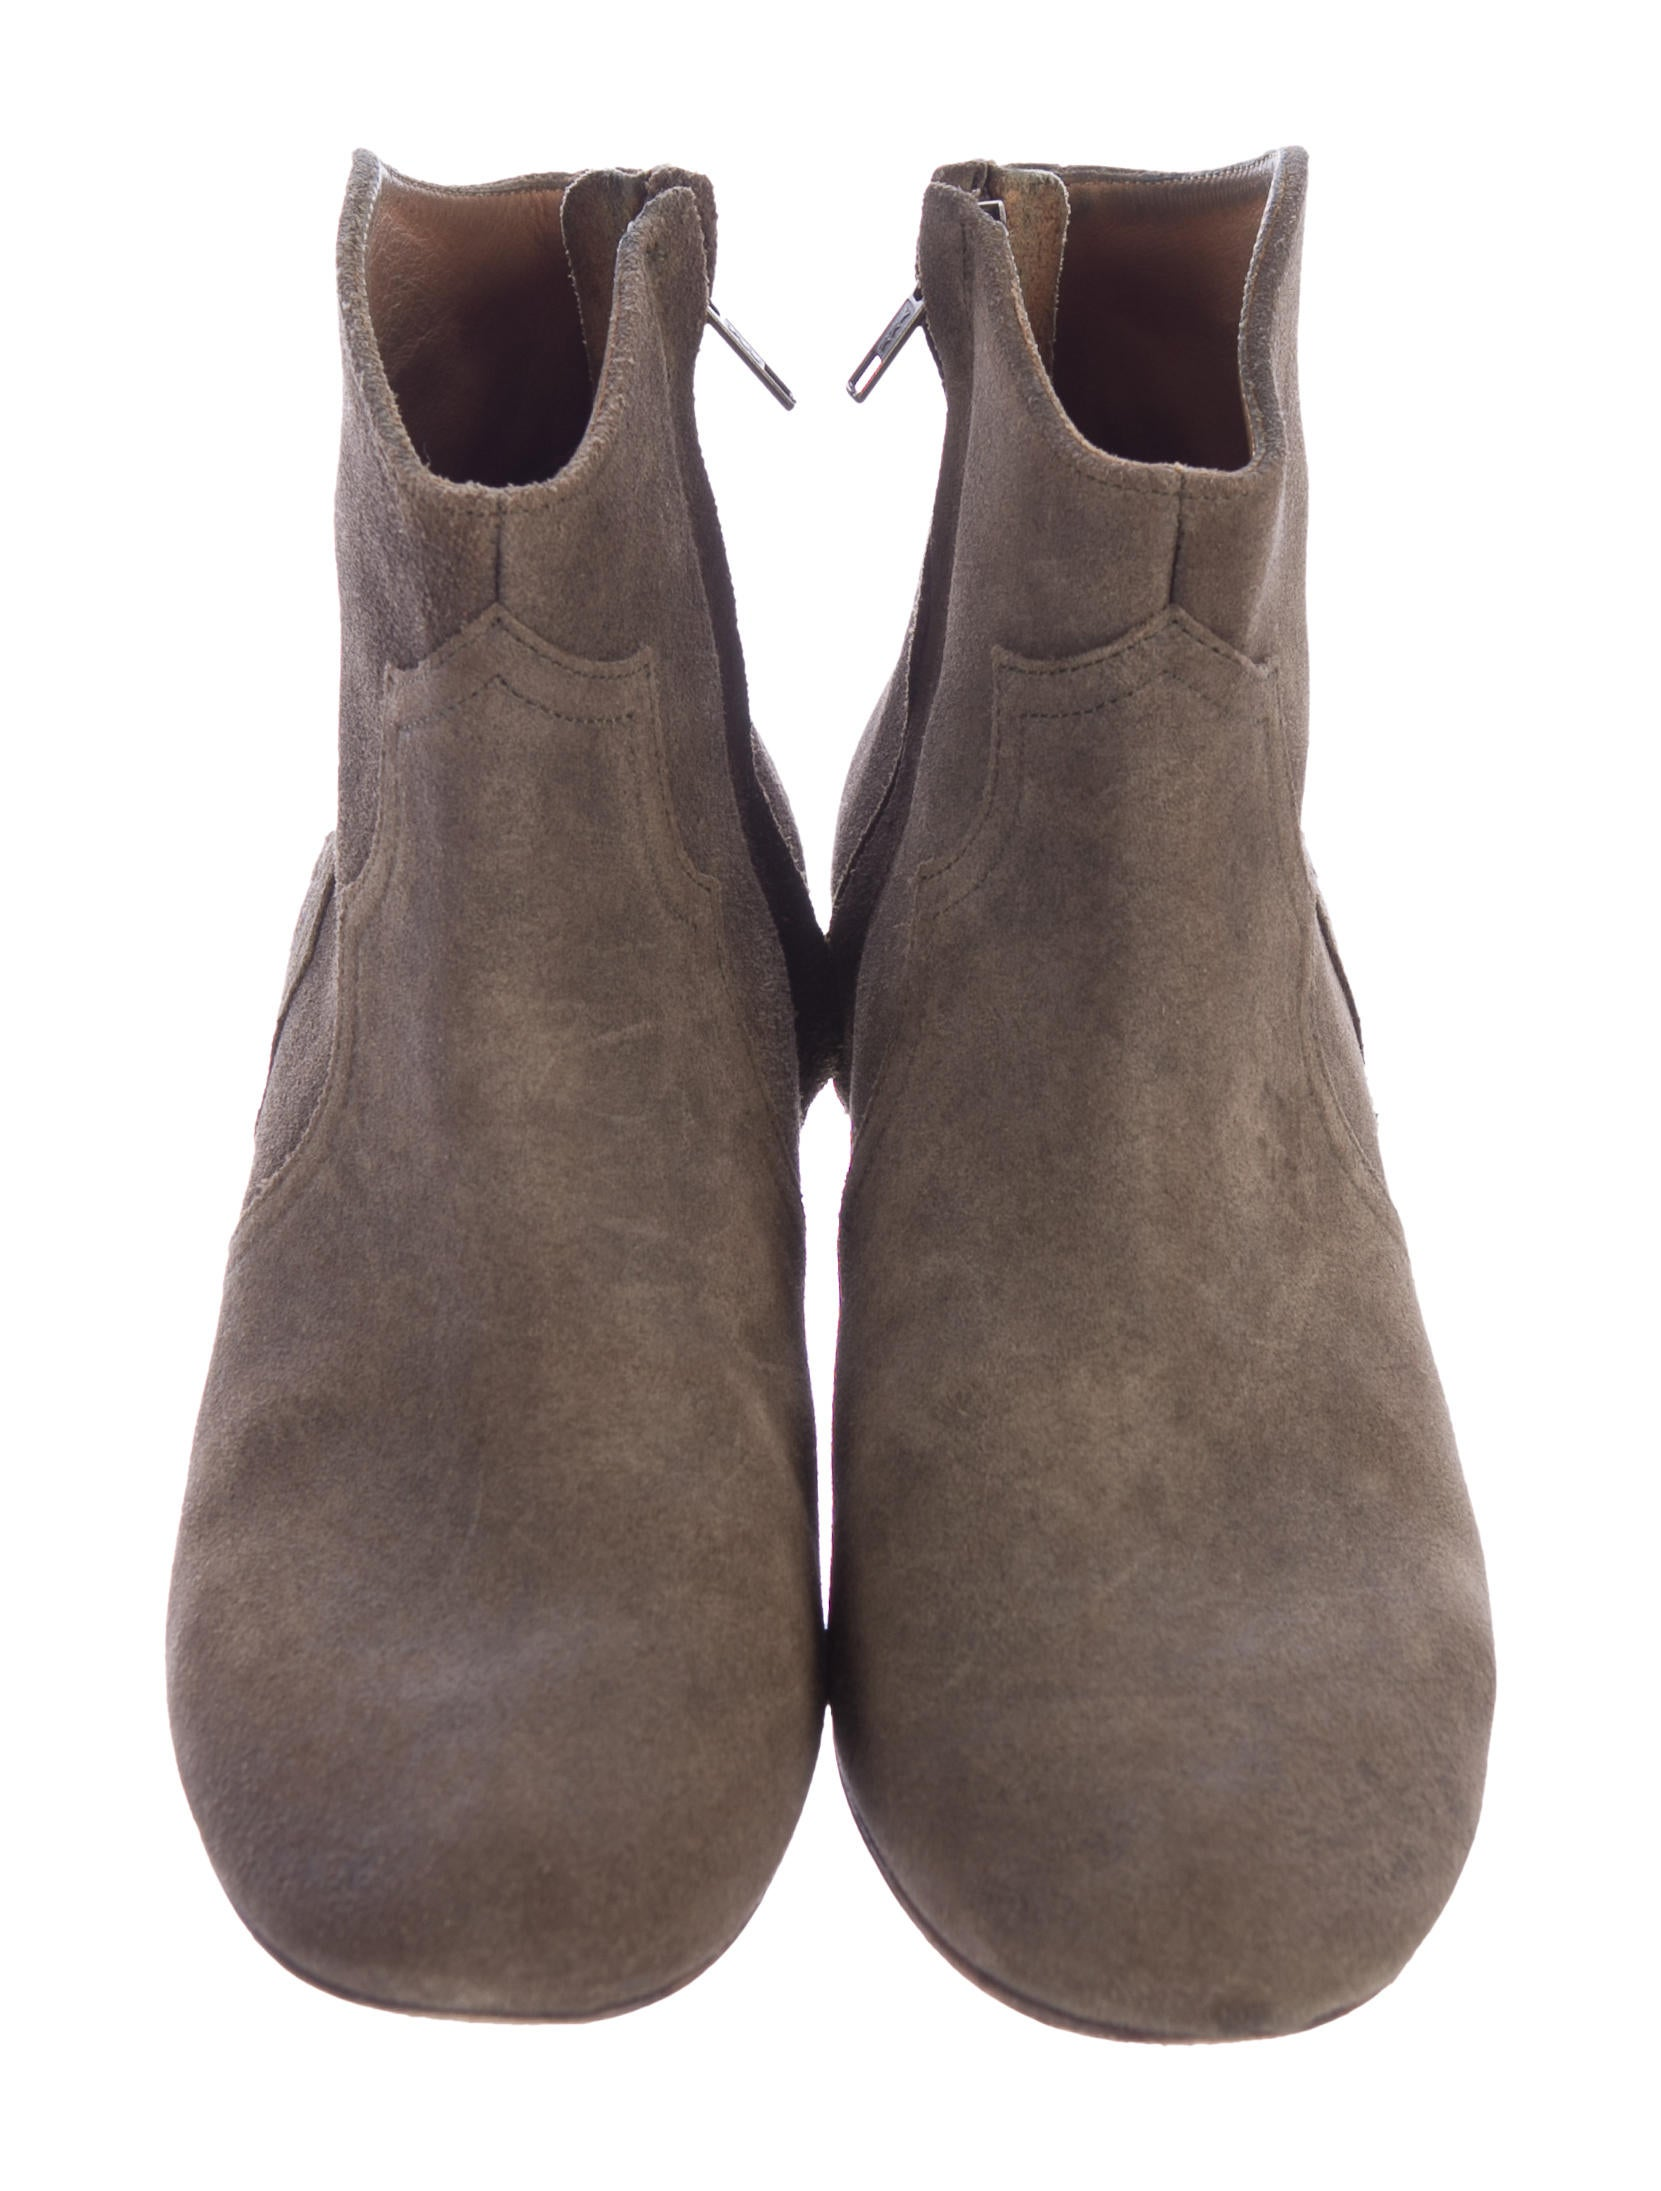 marant dicker suede ankle boots shoes isa44959